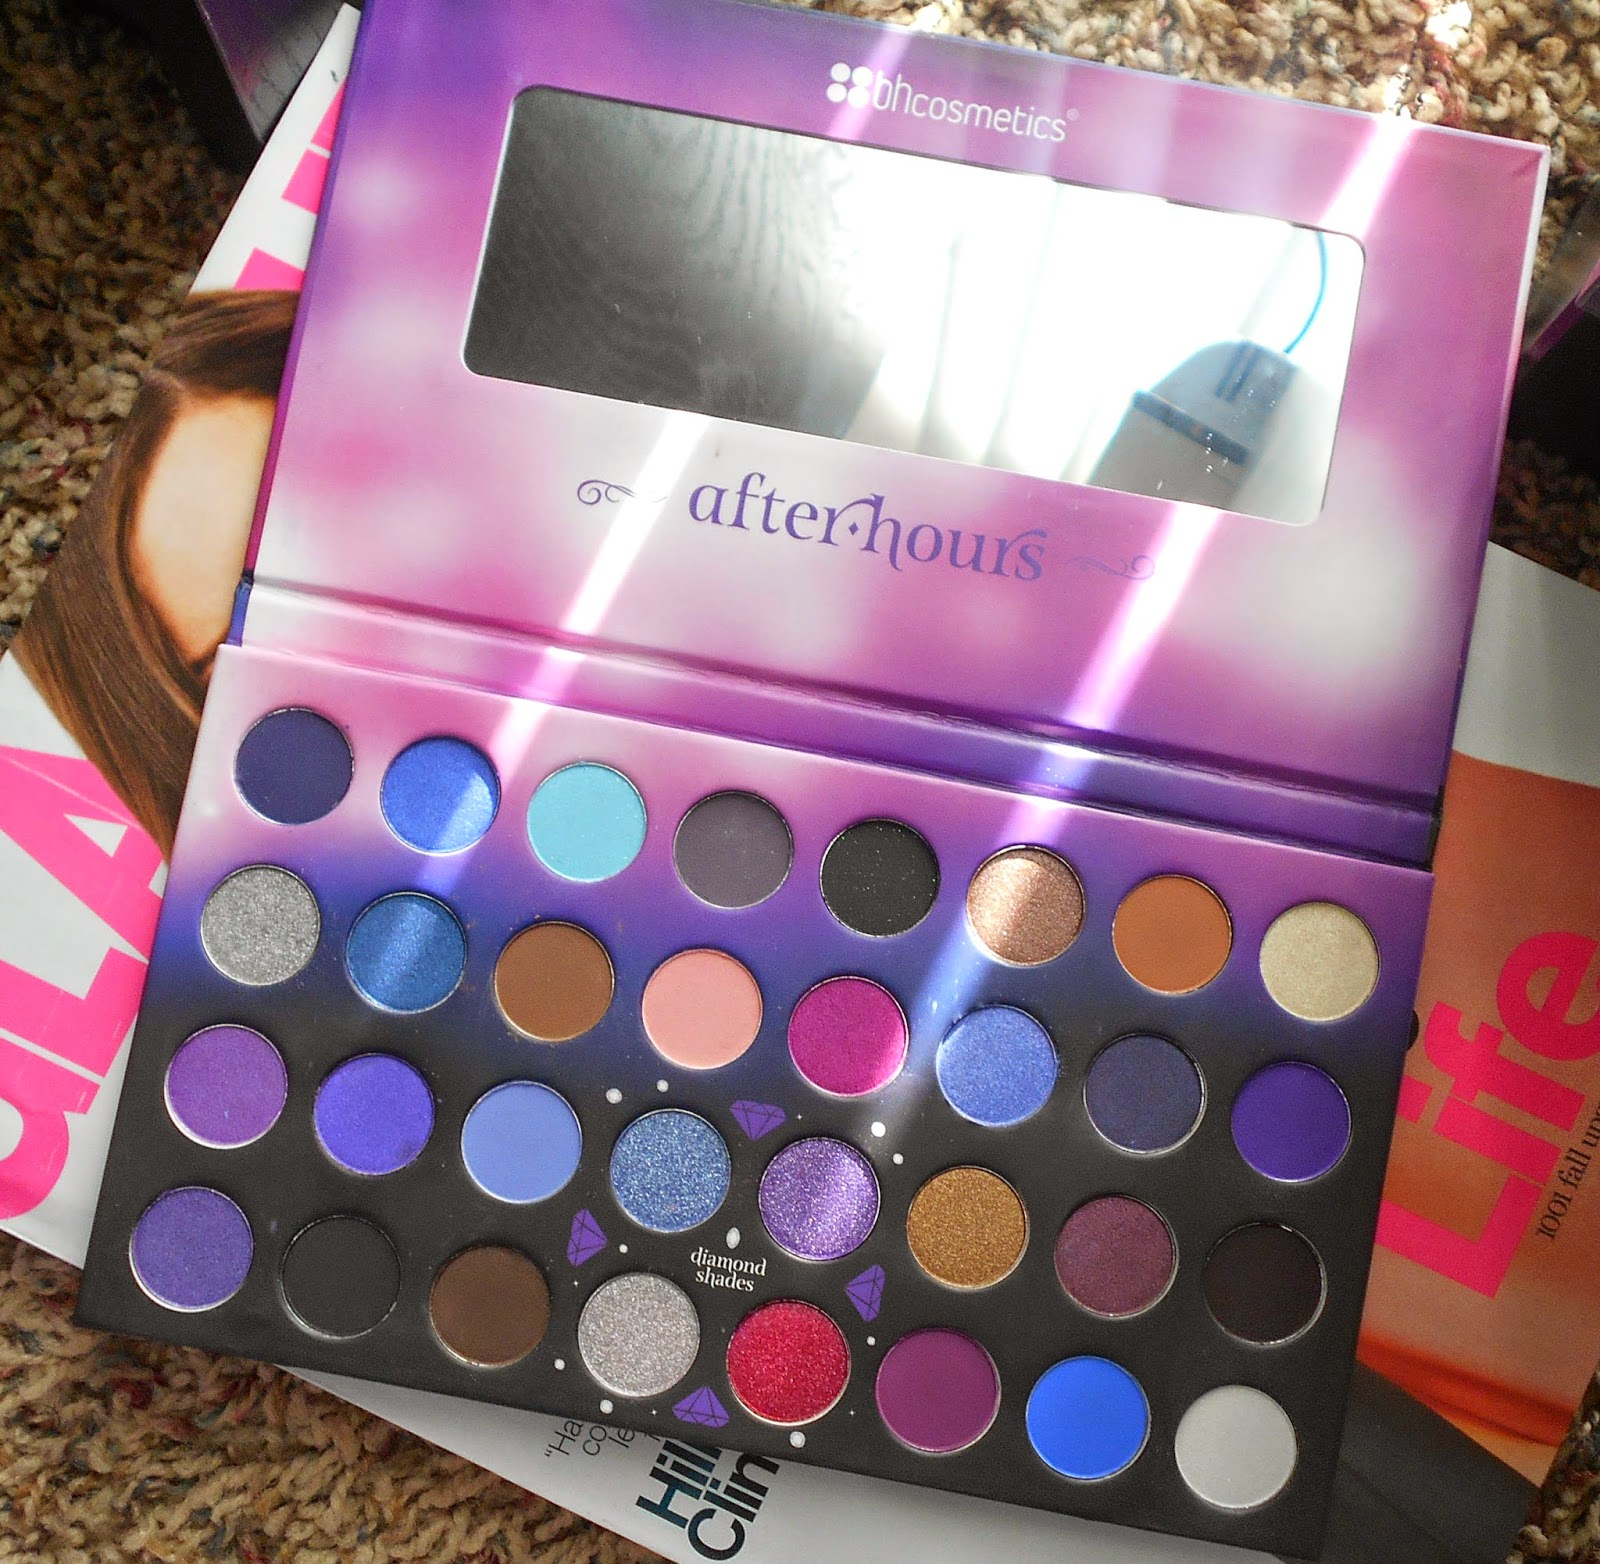 bh Party Girl After Hours Palette